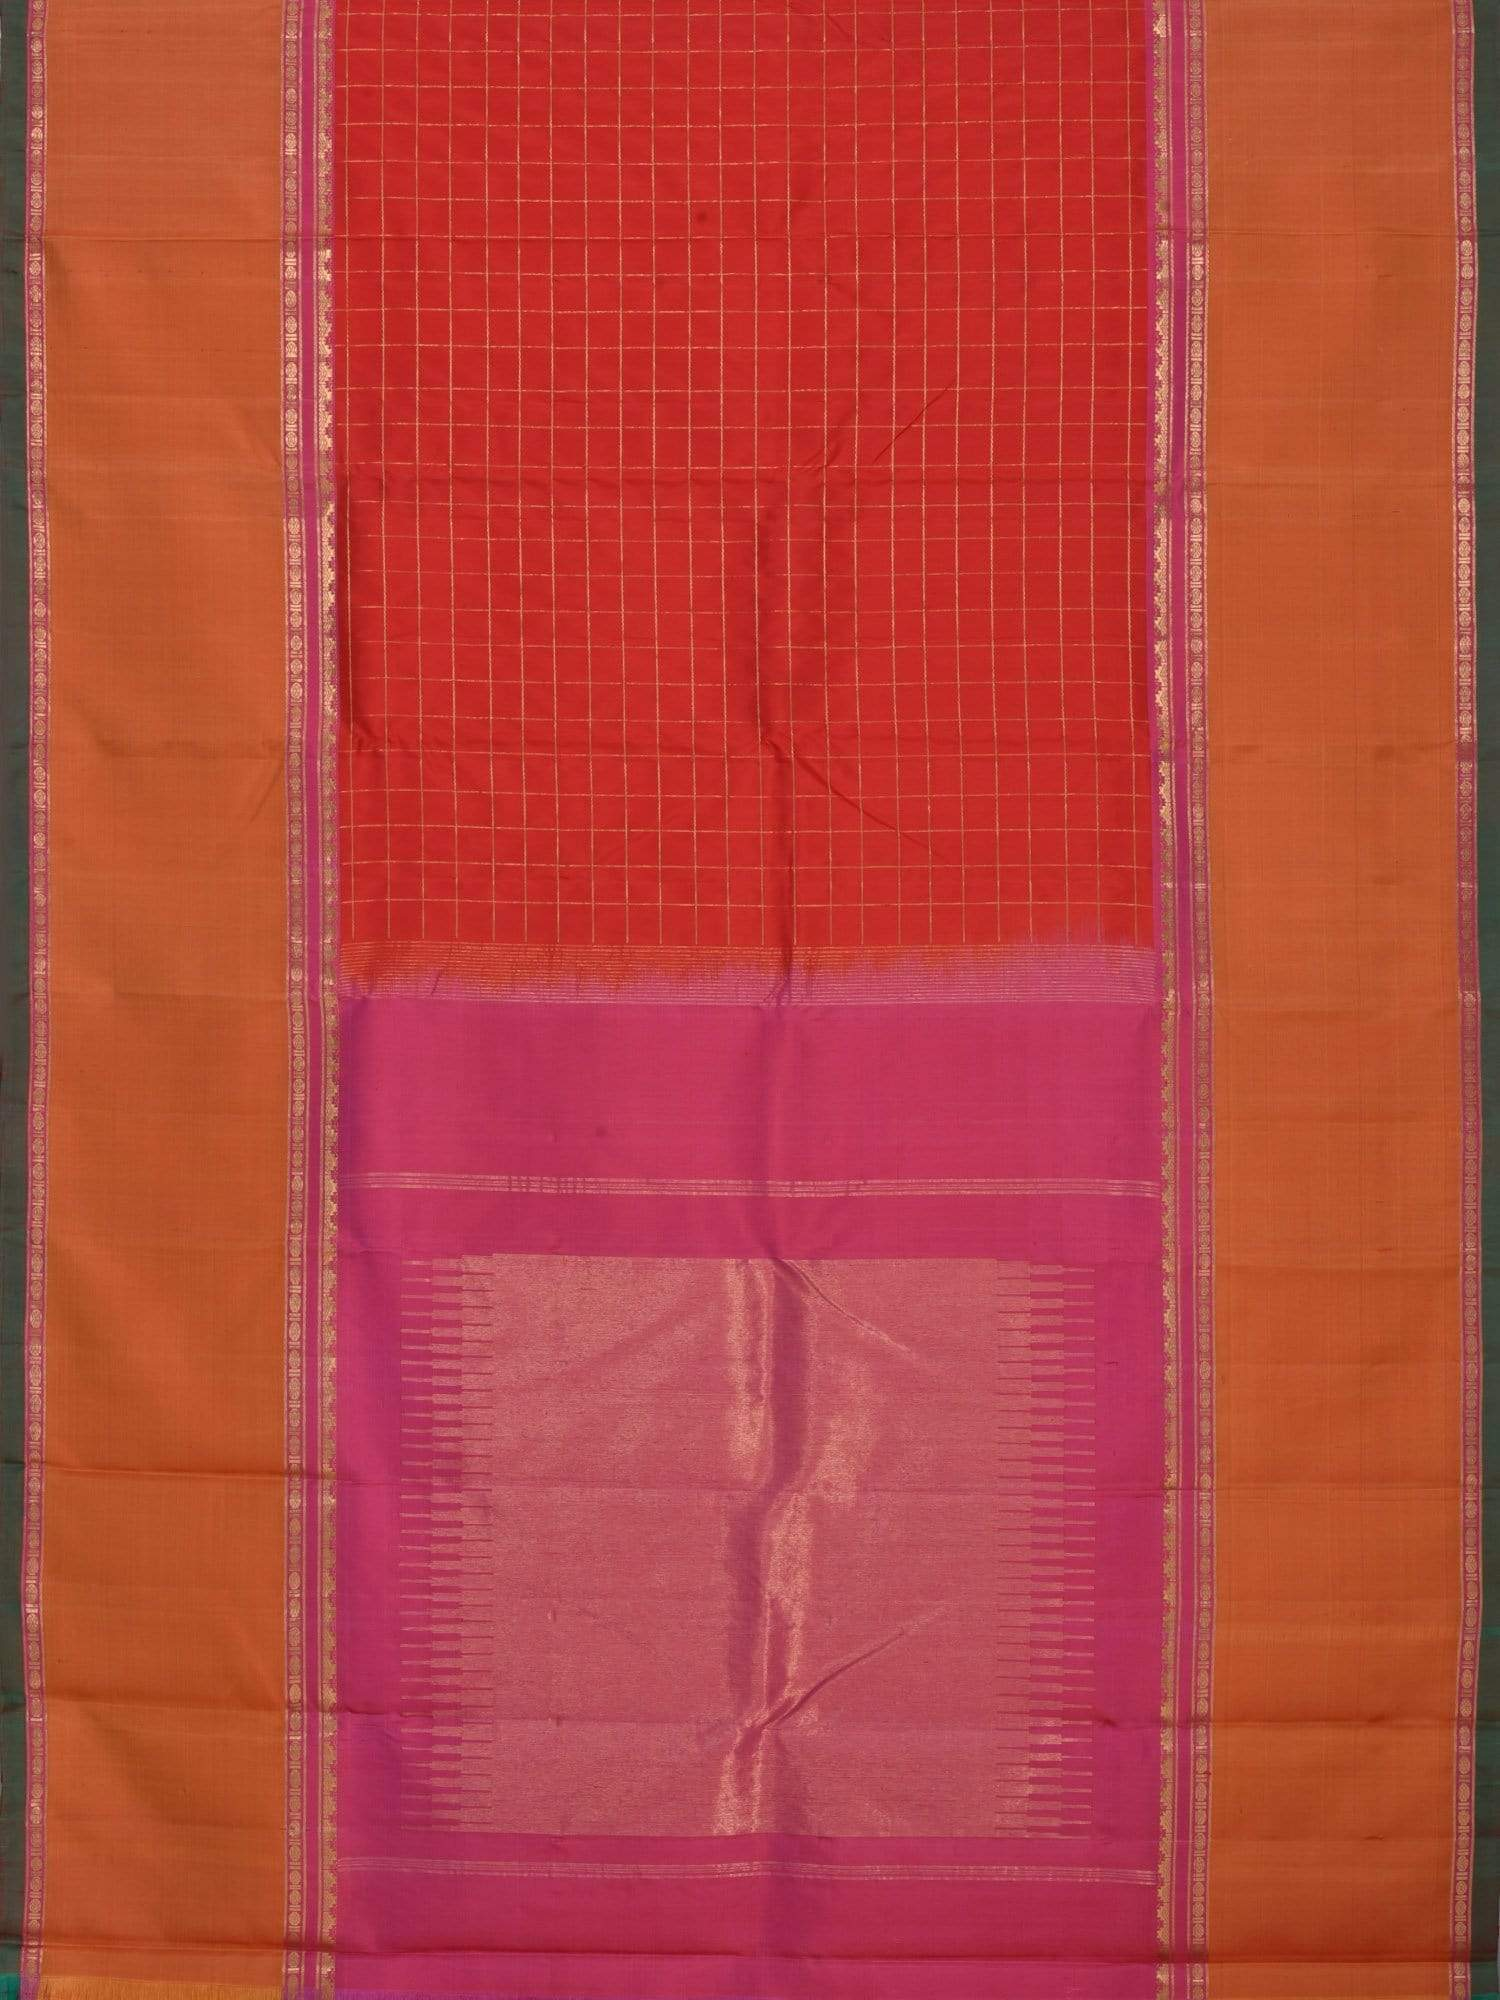 Red Kanchipuram Slik Handloom Saree with Checks Design K0295